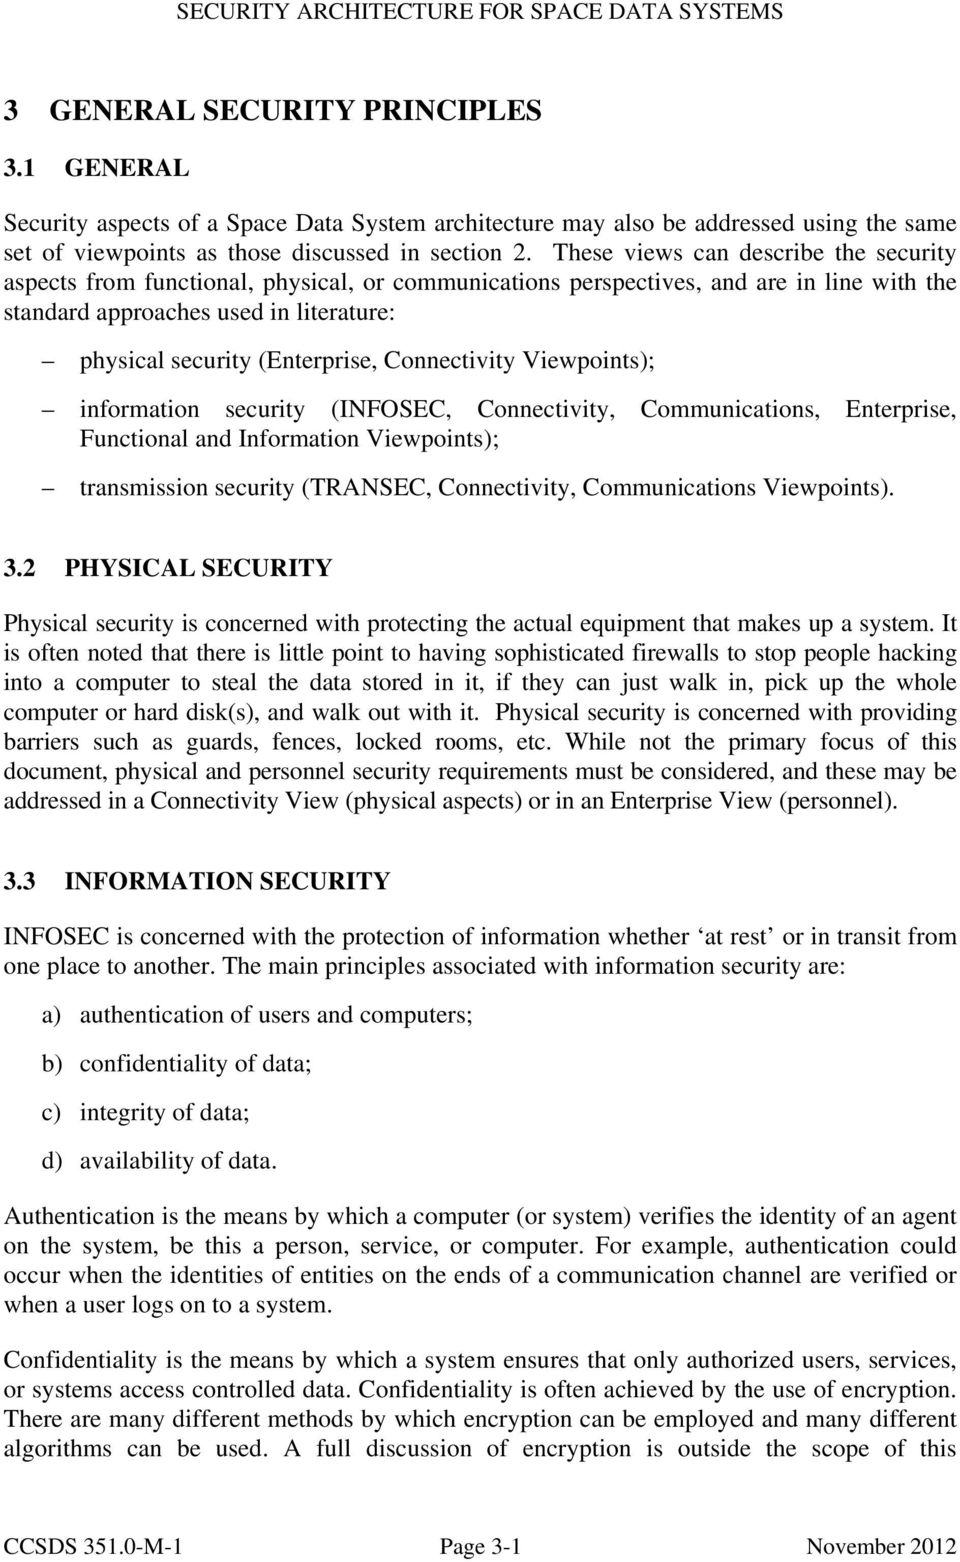 (Enterprise, Connectivity Viewpoints); information security (INFOSEC, Connectivity, Communications, Enterprise, Functional and Information Viewpoints); transmission security (TRANSEC, Connectivity,